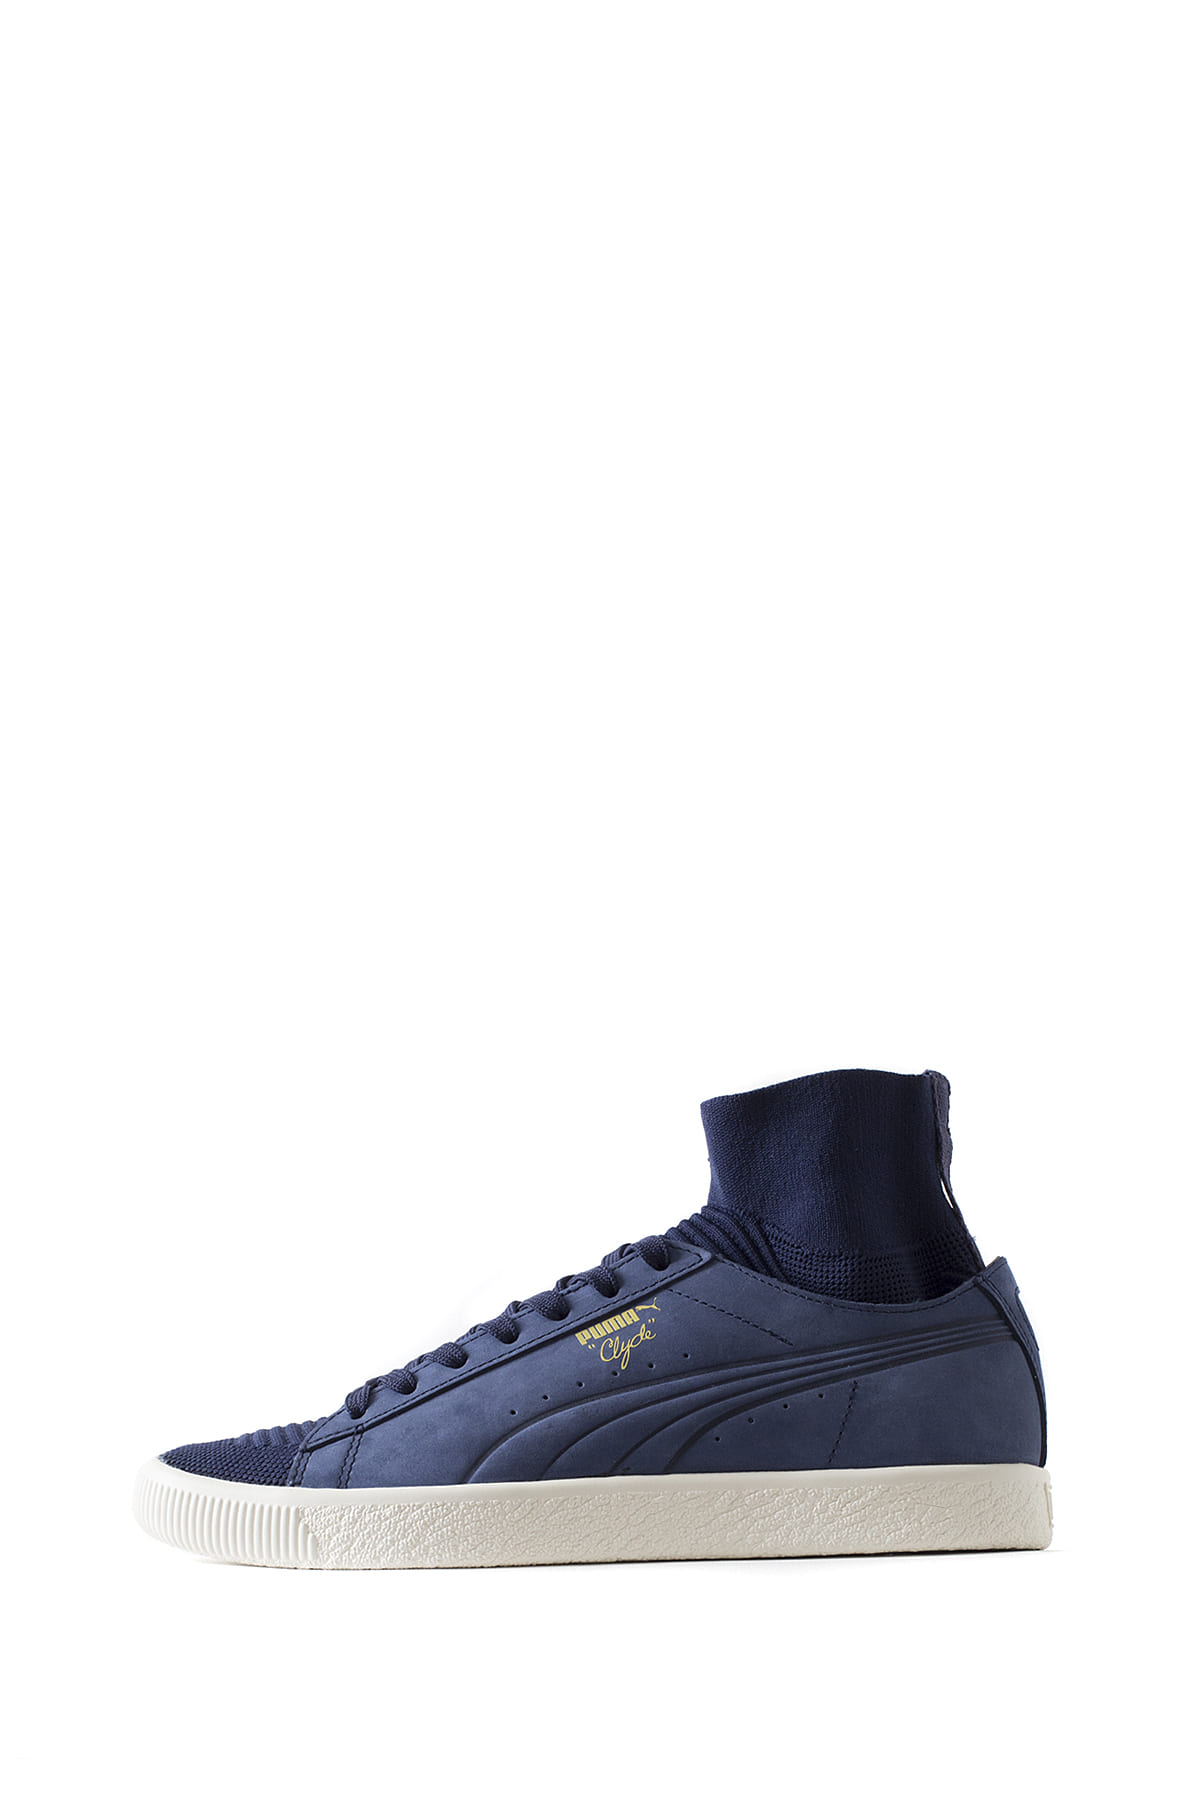 PUMA : Clyde Sock Select (Peacoat)